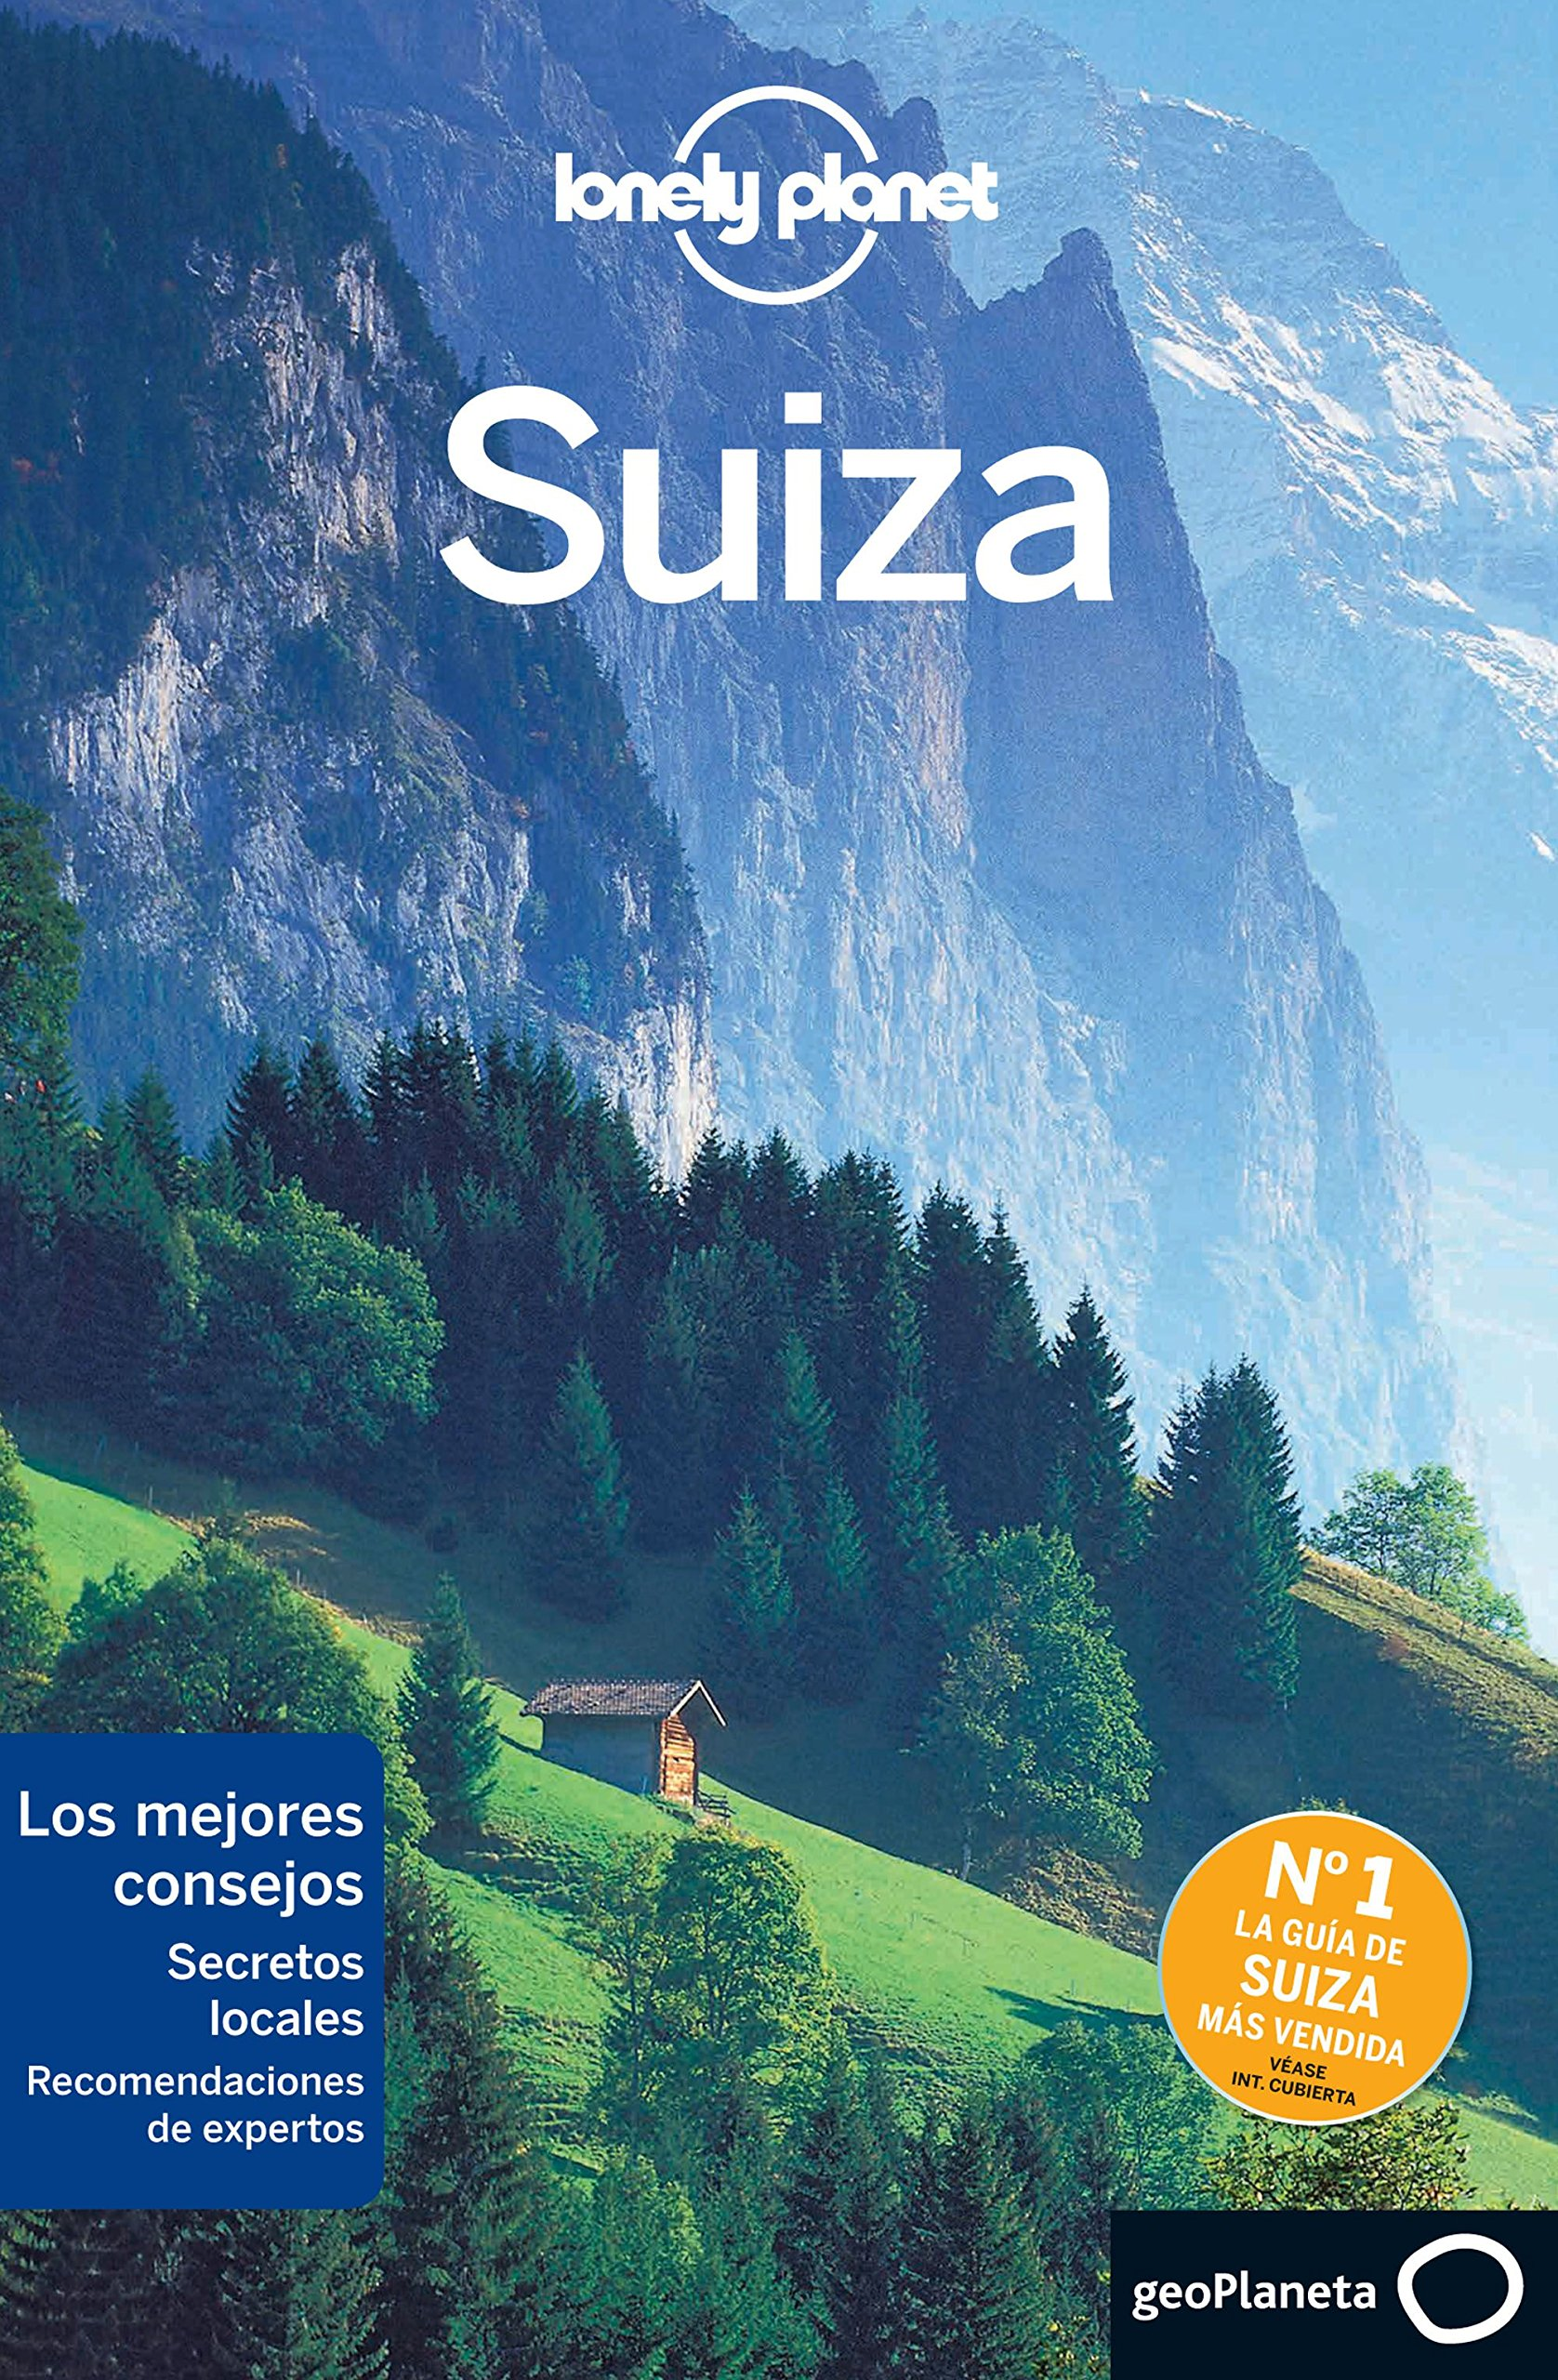 Suiza 2: 1 Guías de País Lonely Planet Idioma Inglés: Amazon.es: Williams, Nicola, Christiani, Kerry, Clark, Gregor, O Brien, Sally, García Barriuso, Elena, Soms Tramujas, Roser: Libros